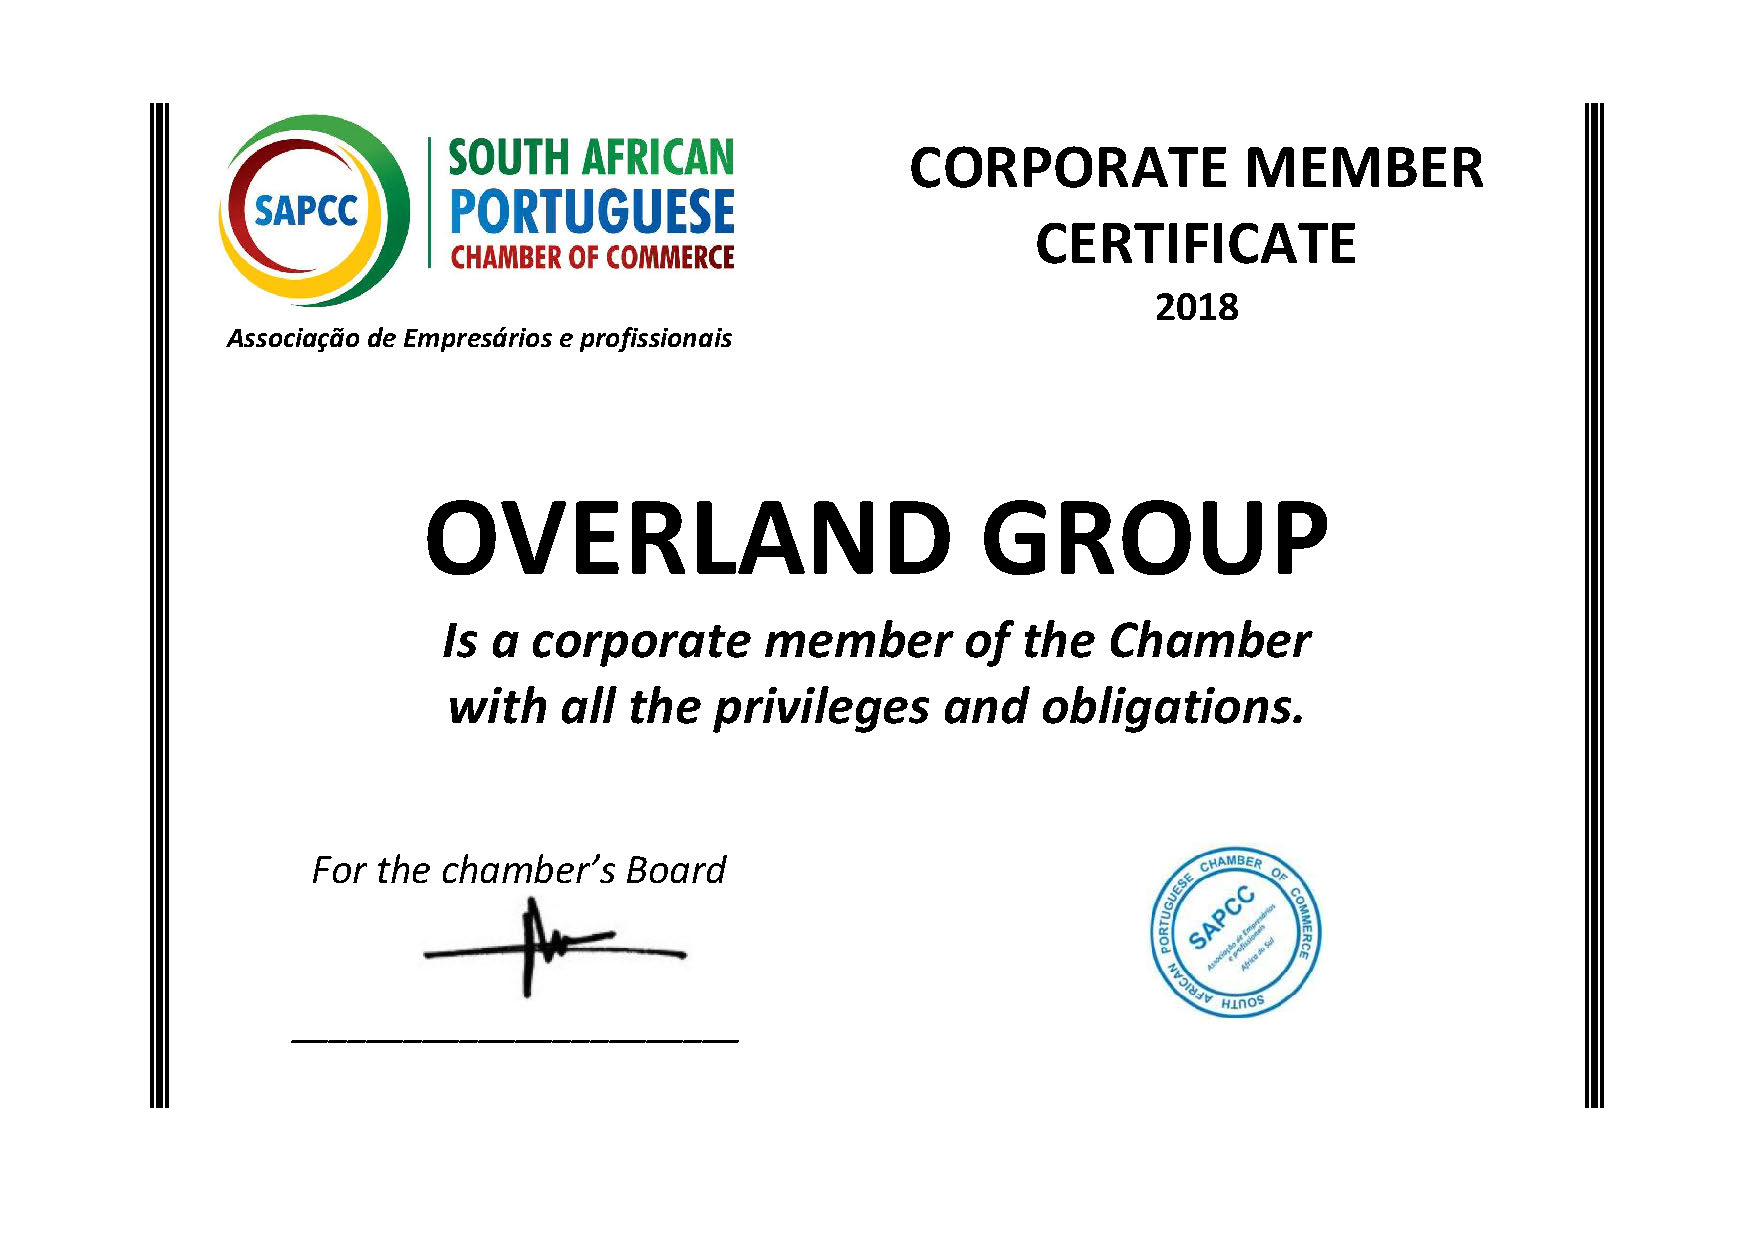 Overland Group Corporate Member Cerfificate